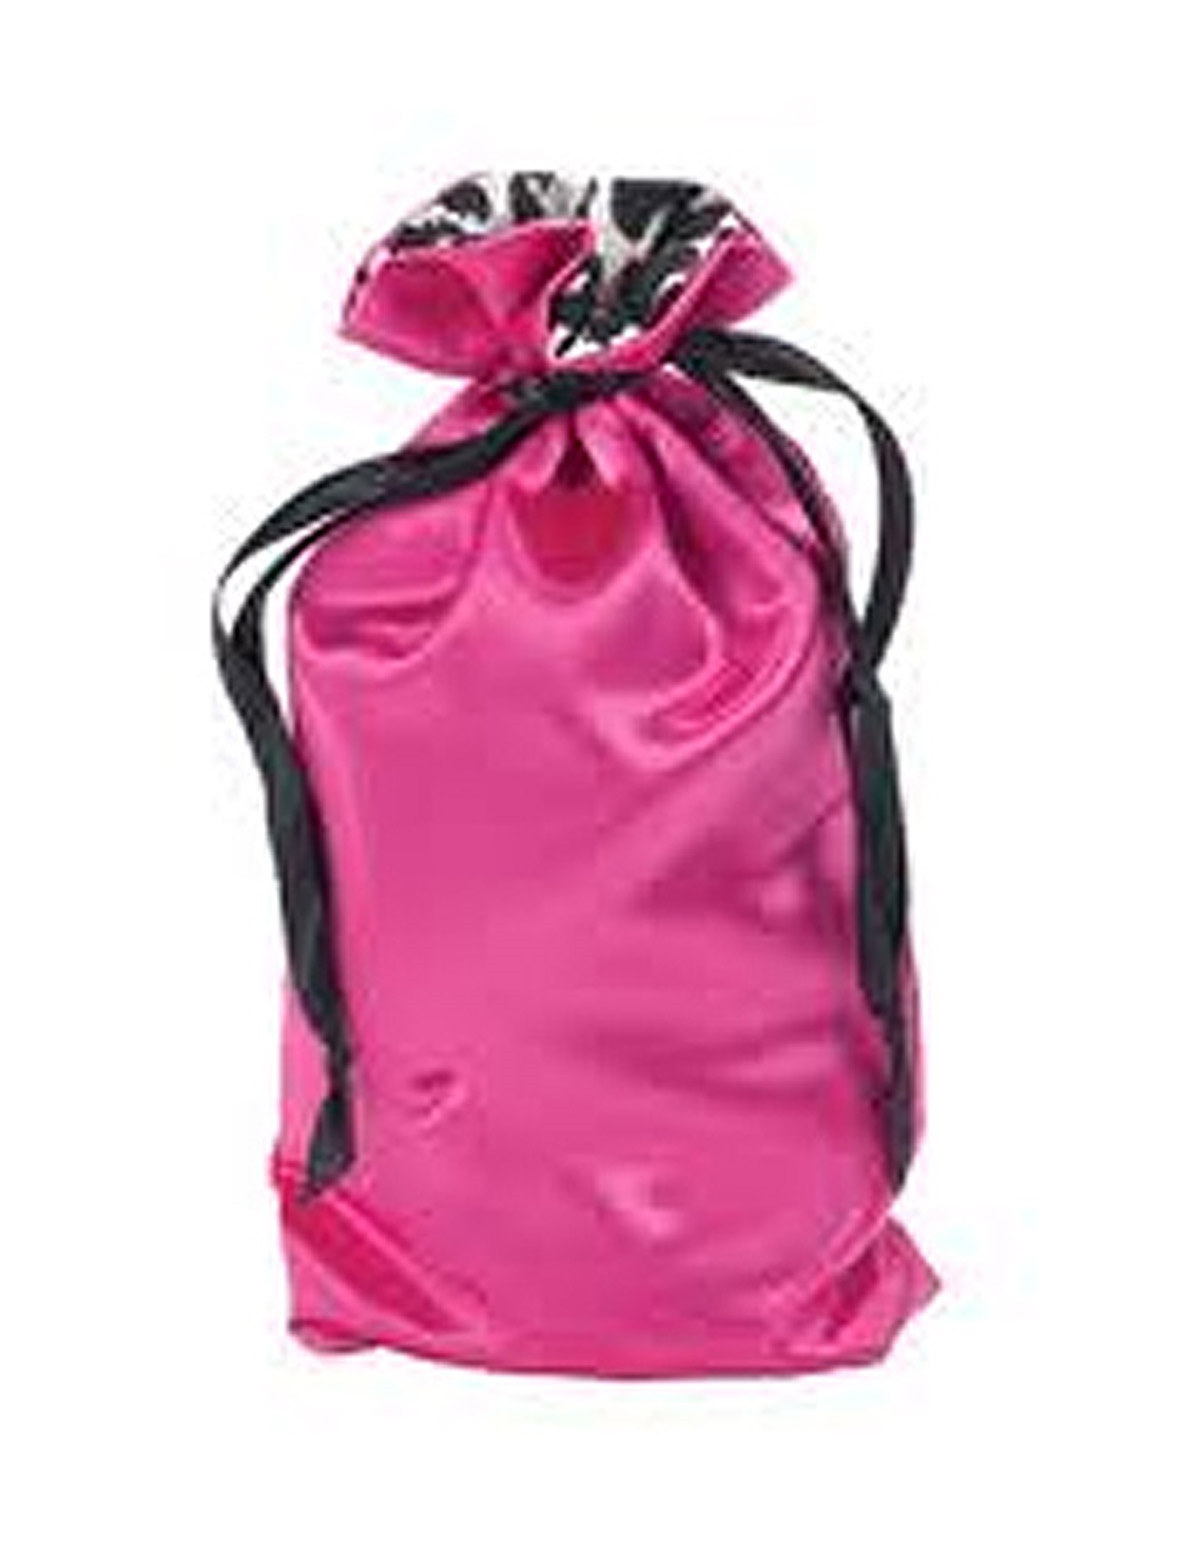 Sugar Sak Discreet Toy Bag